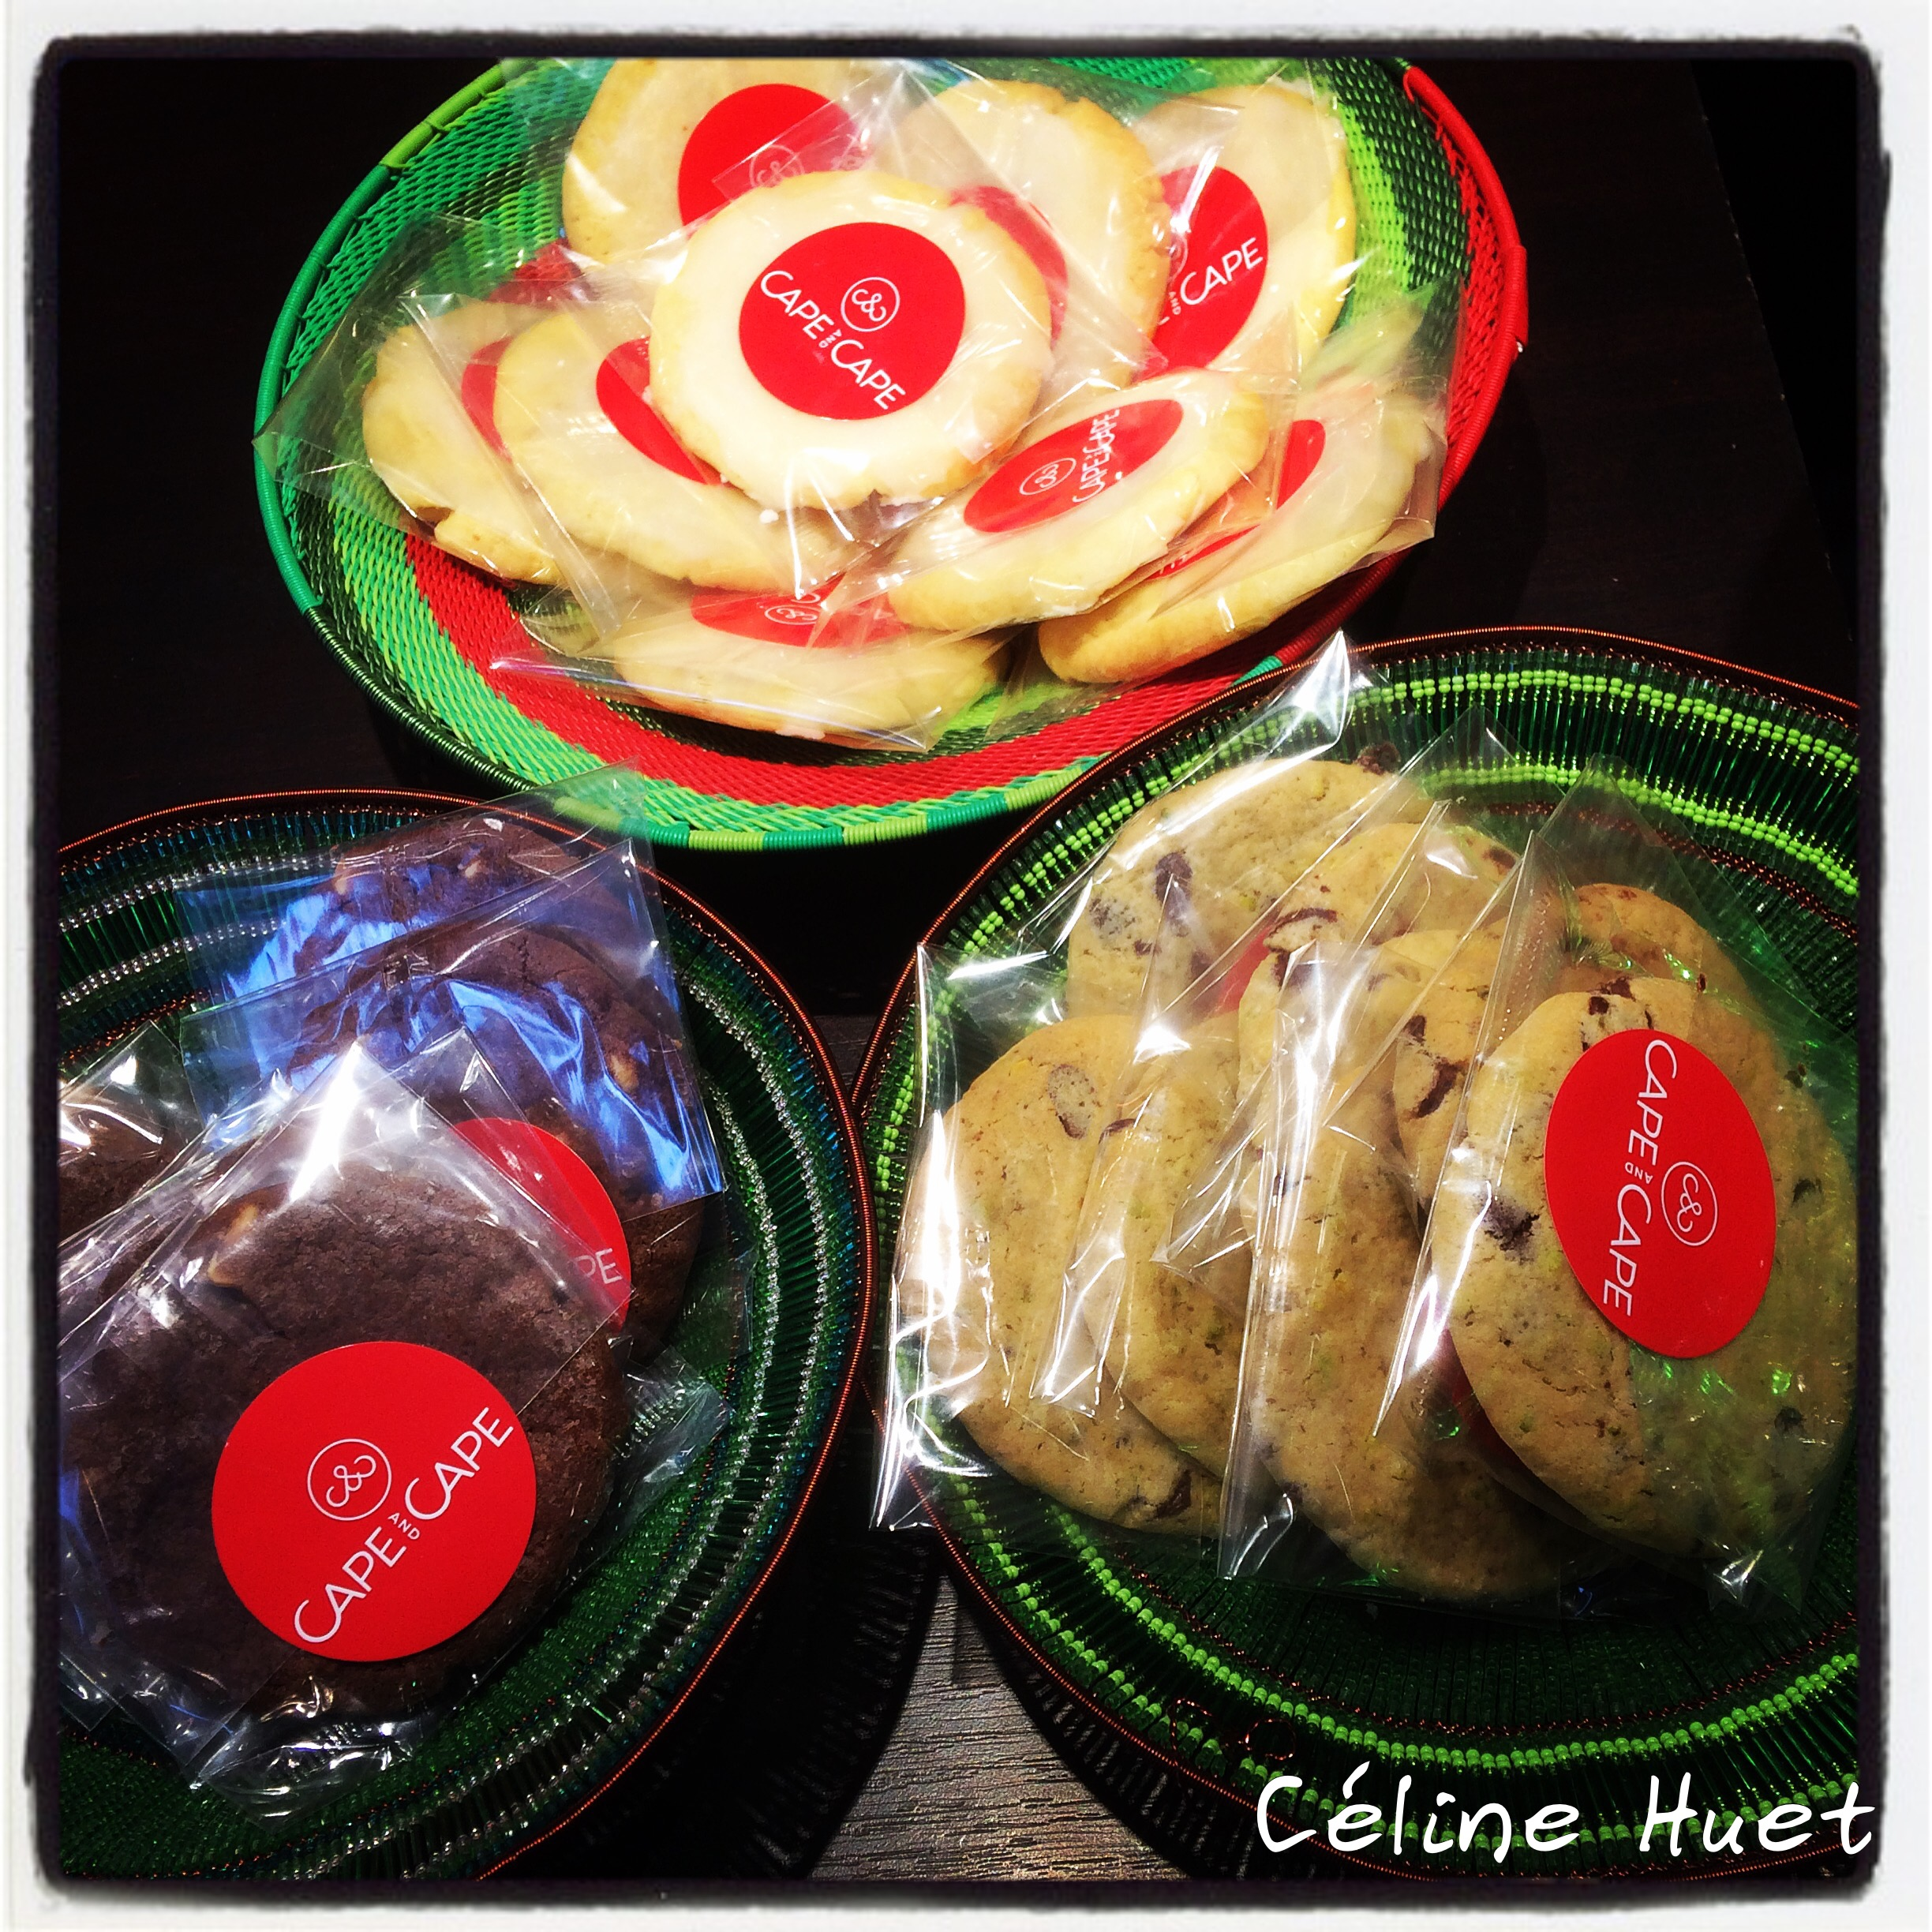 Cookies boutique Cape & Cape Marais Paris